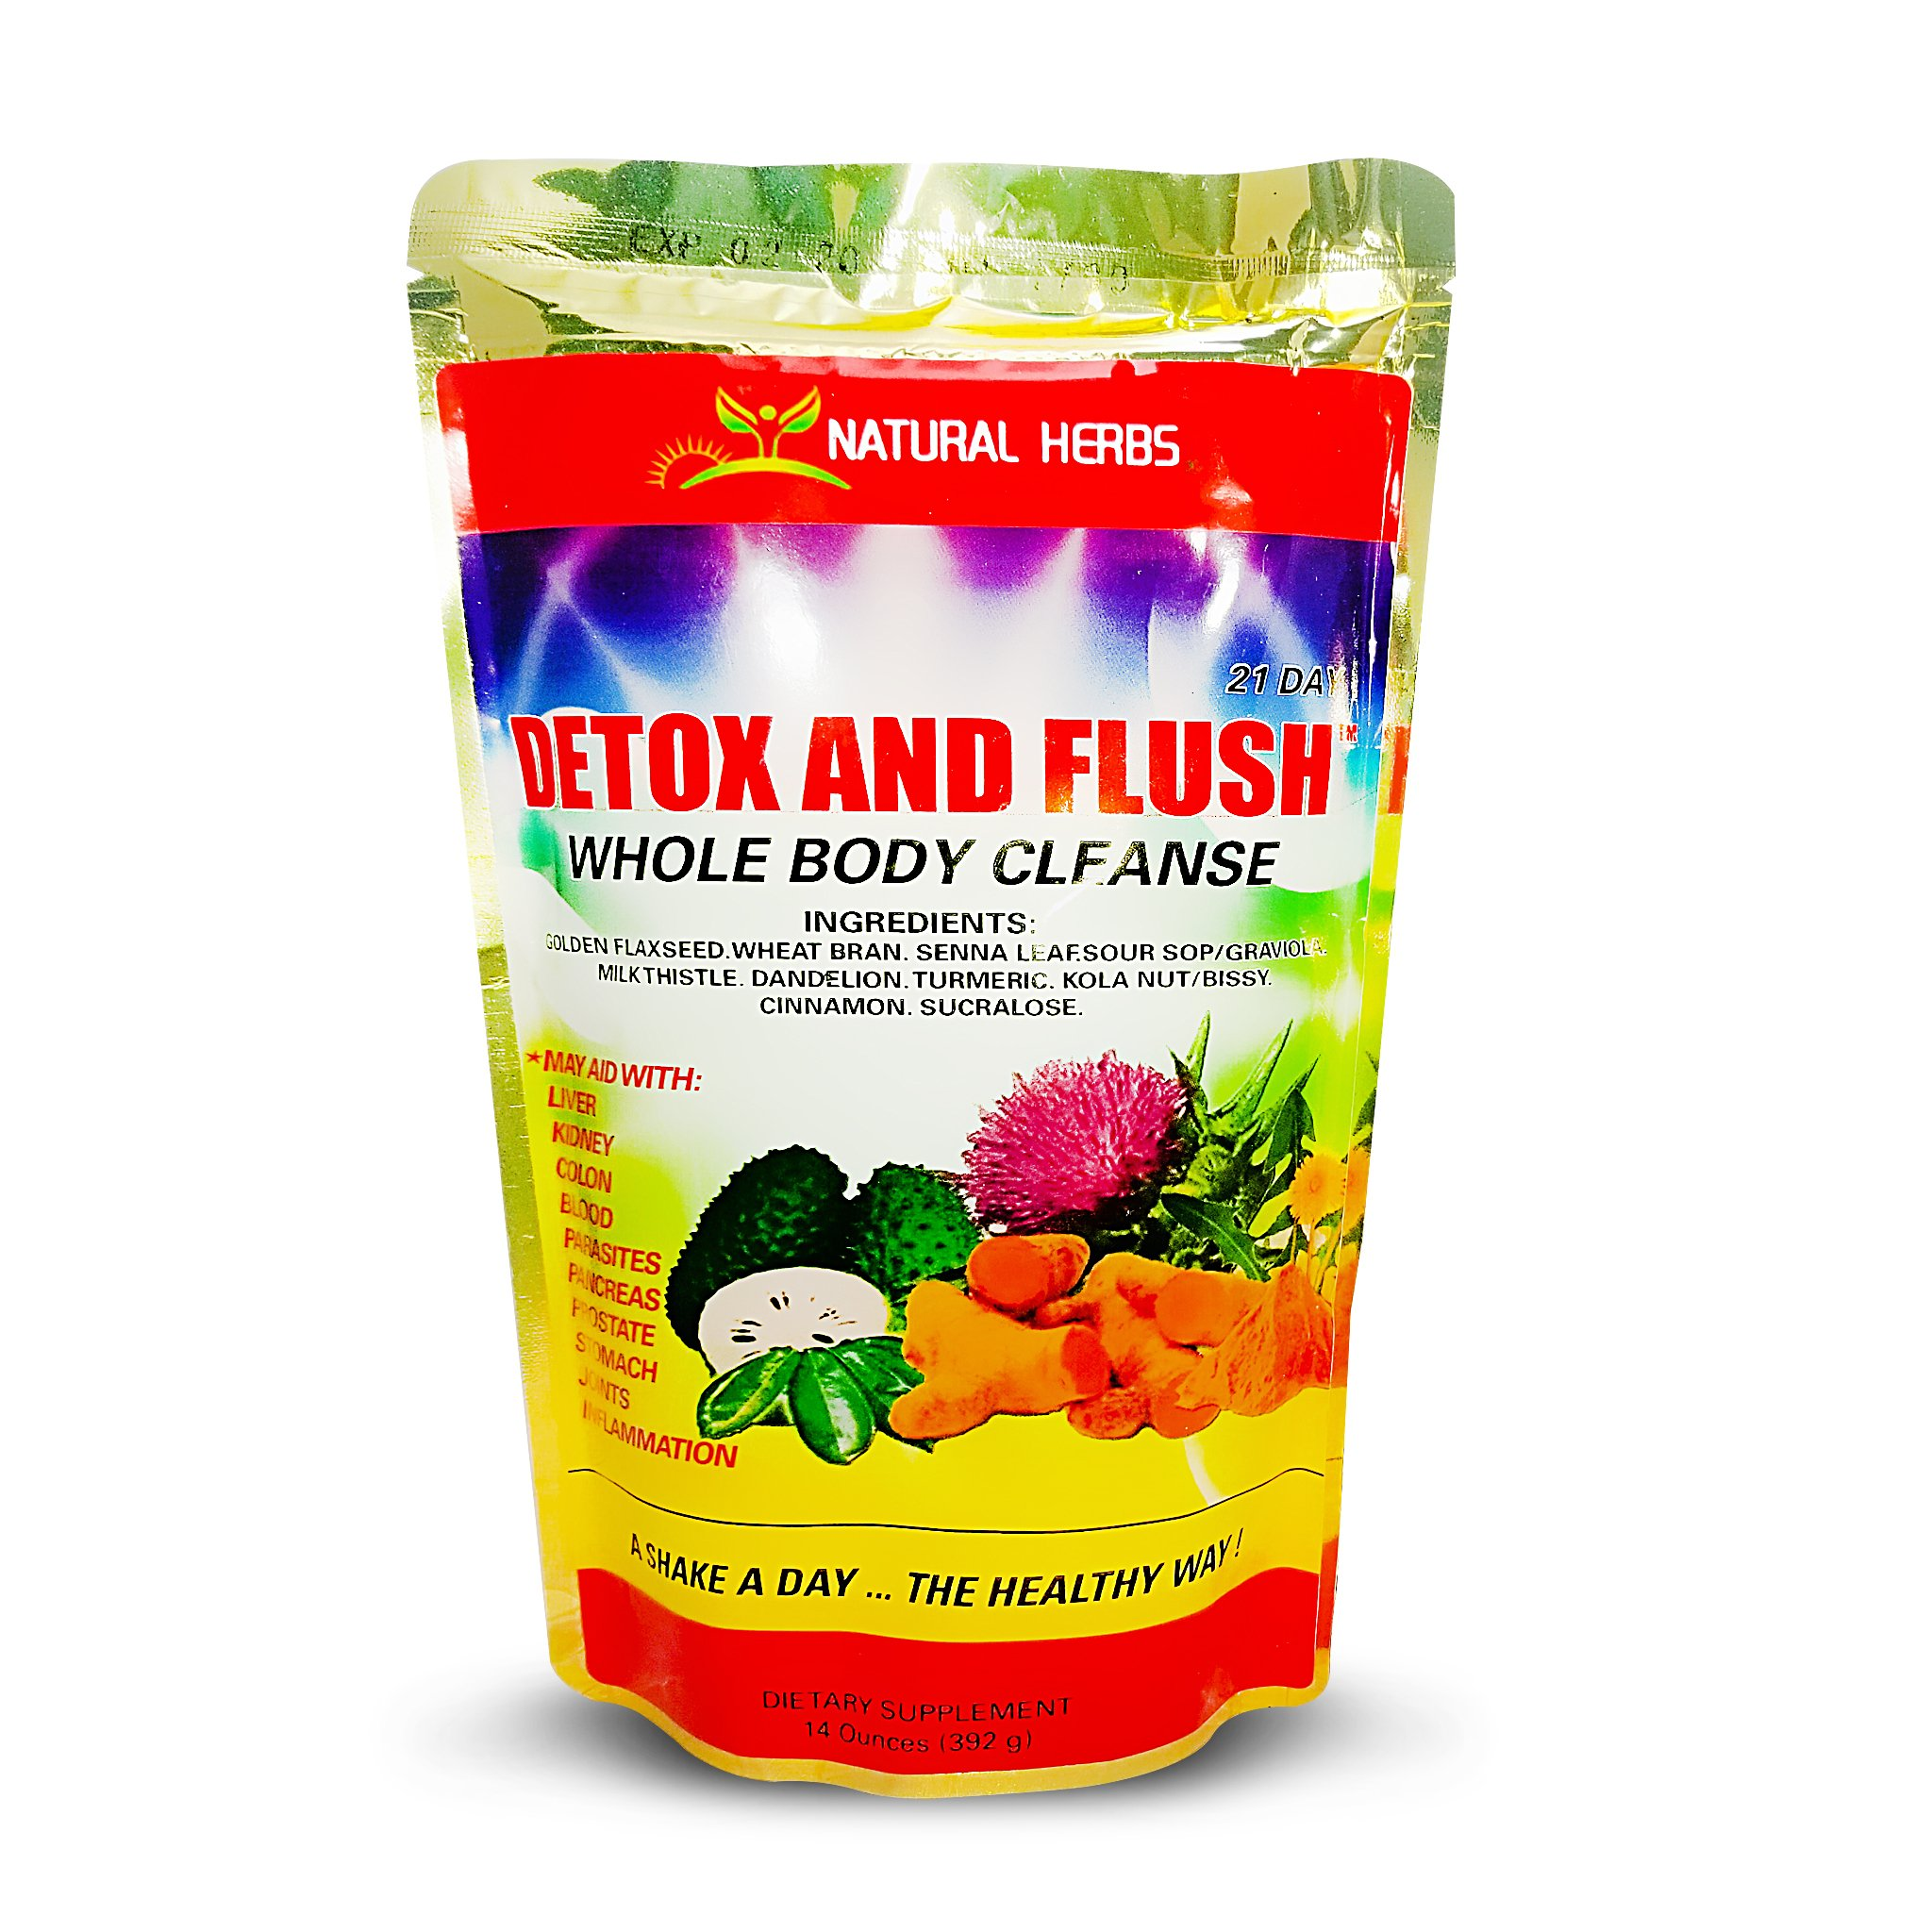 Detox and Flush by NATURAL HERBS